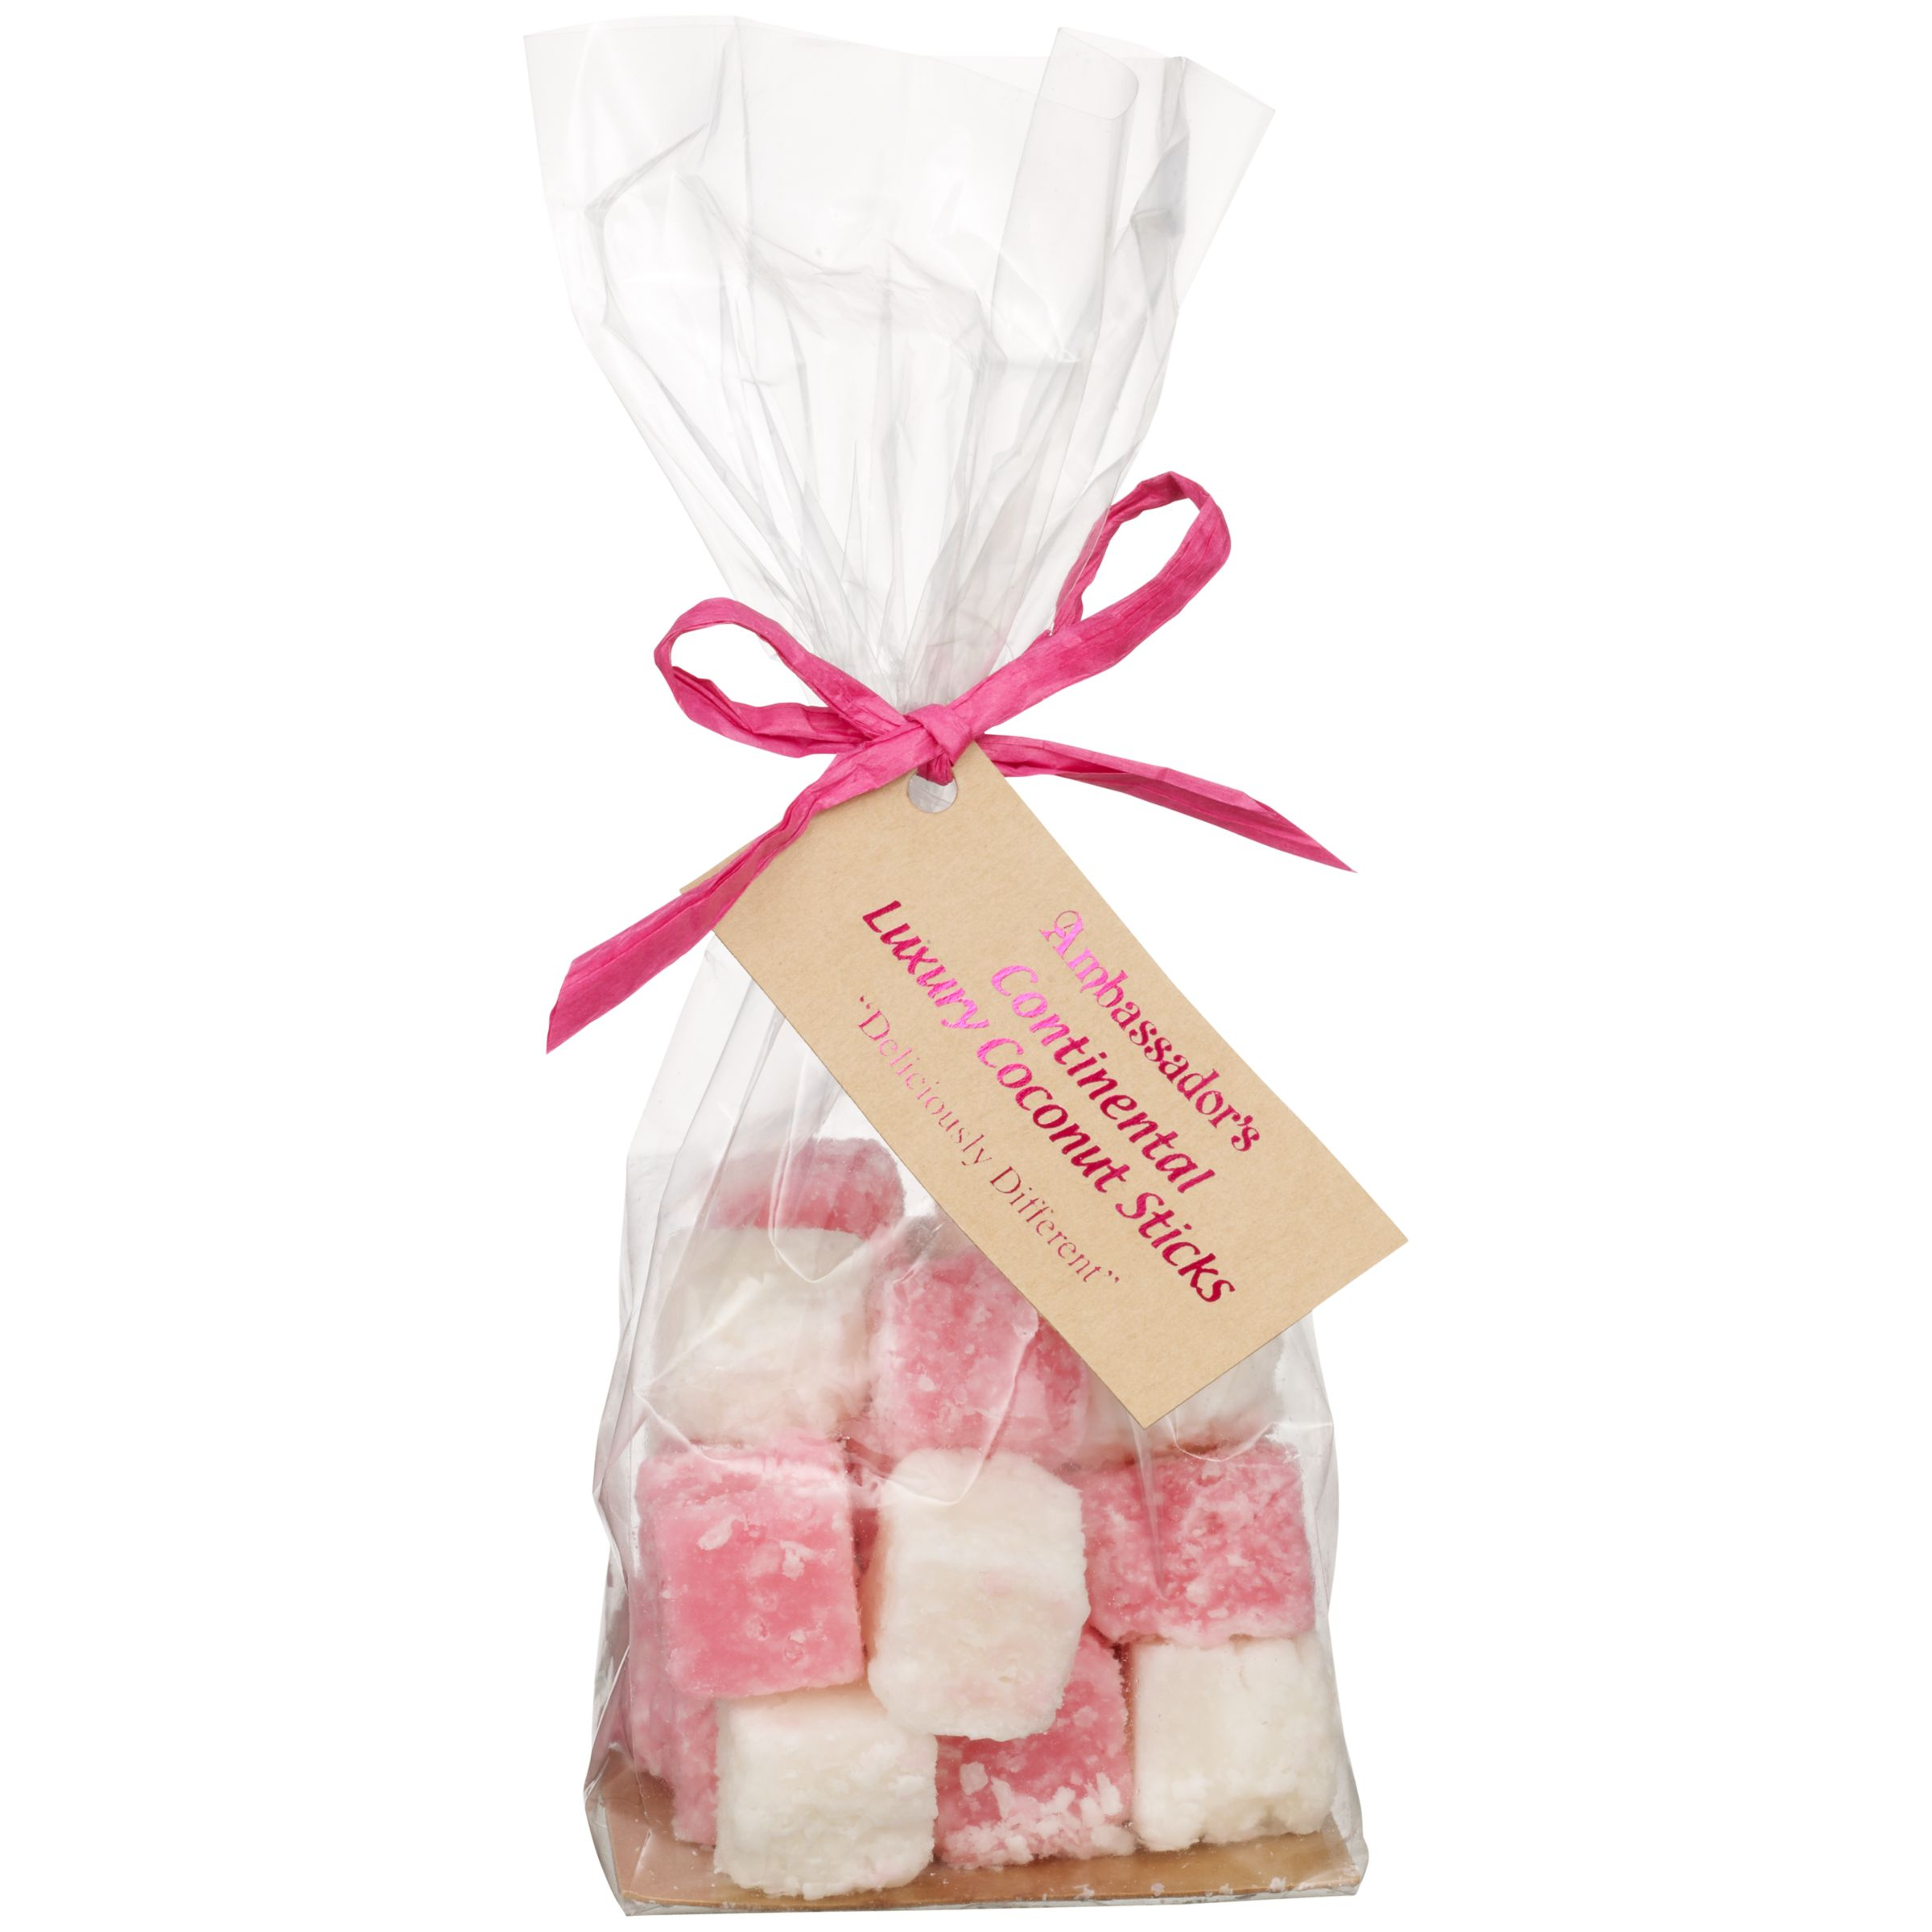 Ambassadors of London Ambassadors of London Pink and White Coconut Slice, 200g